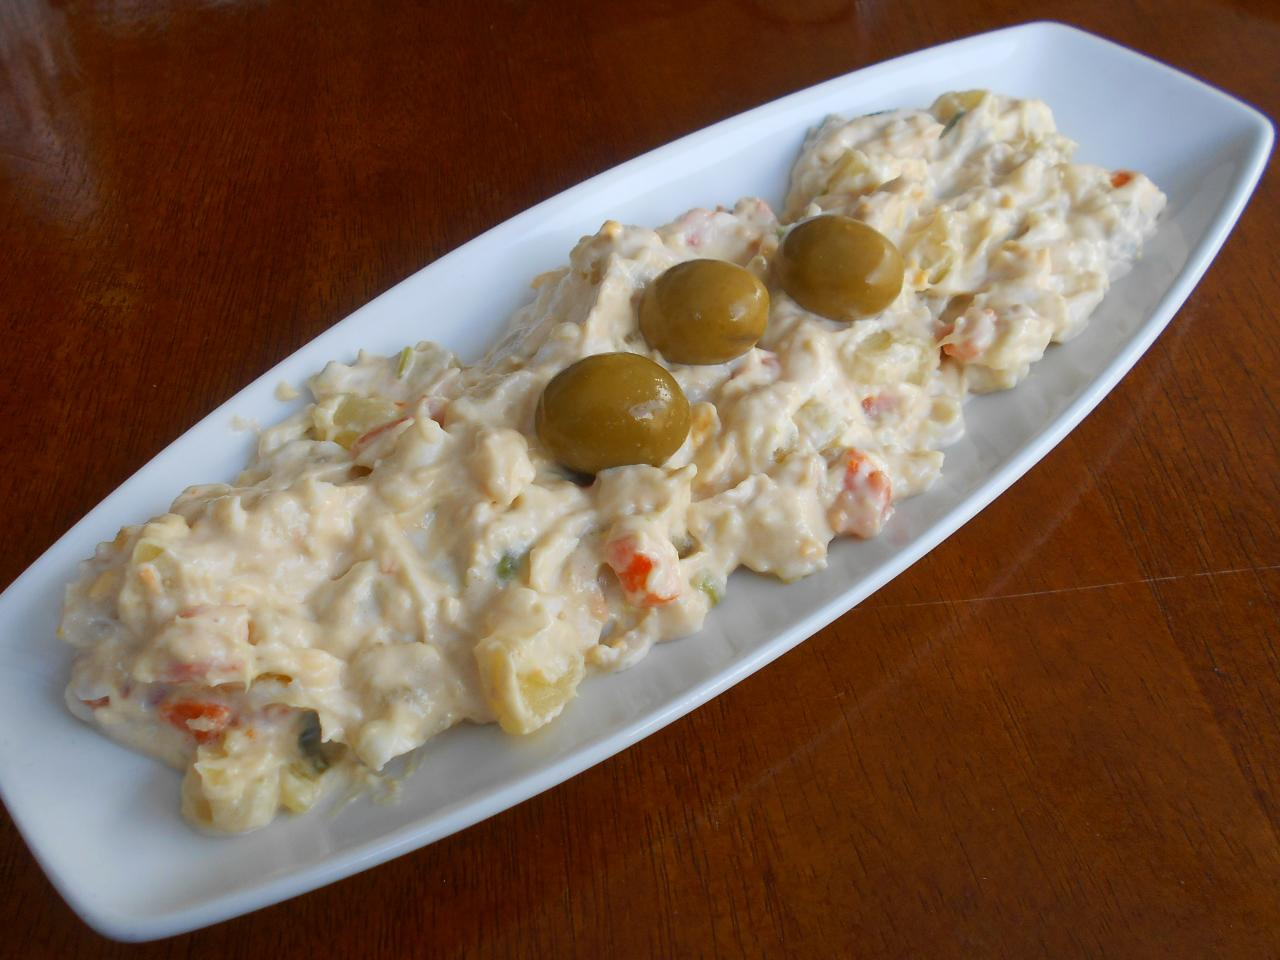 Their inaccurate version of Russian salad was most enjoyable